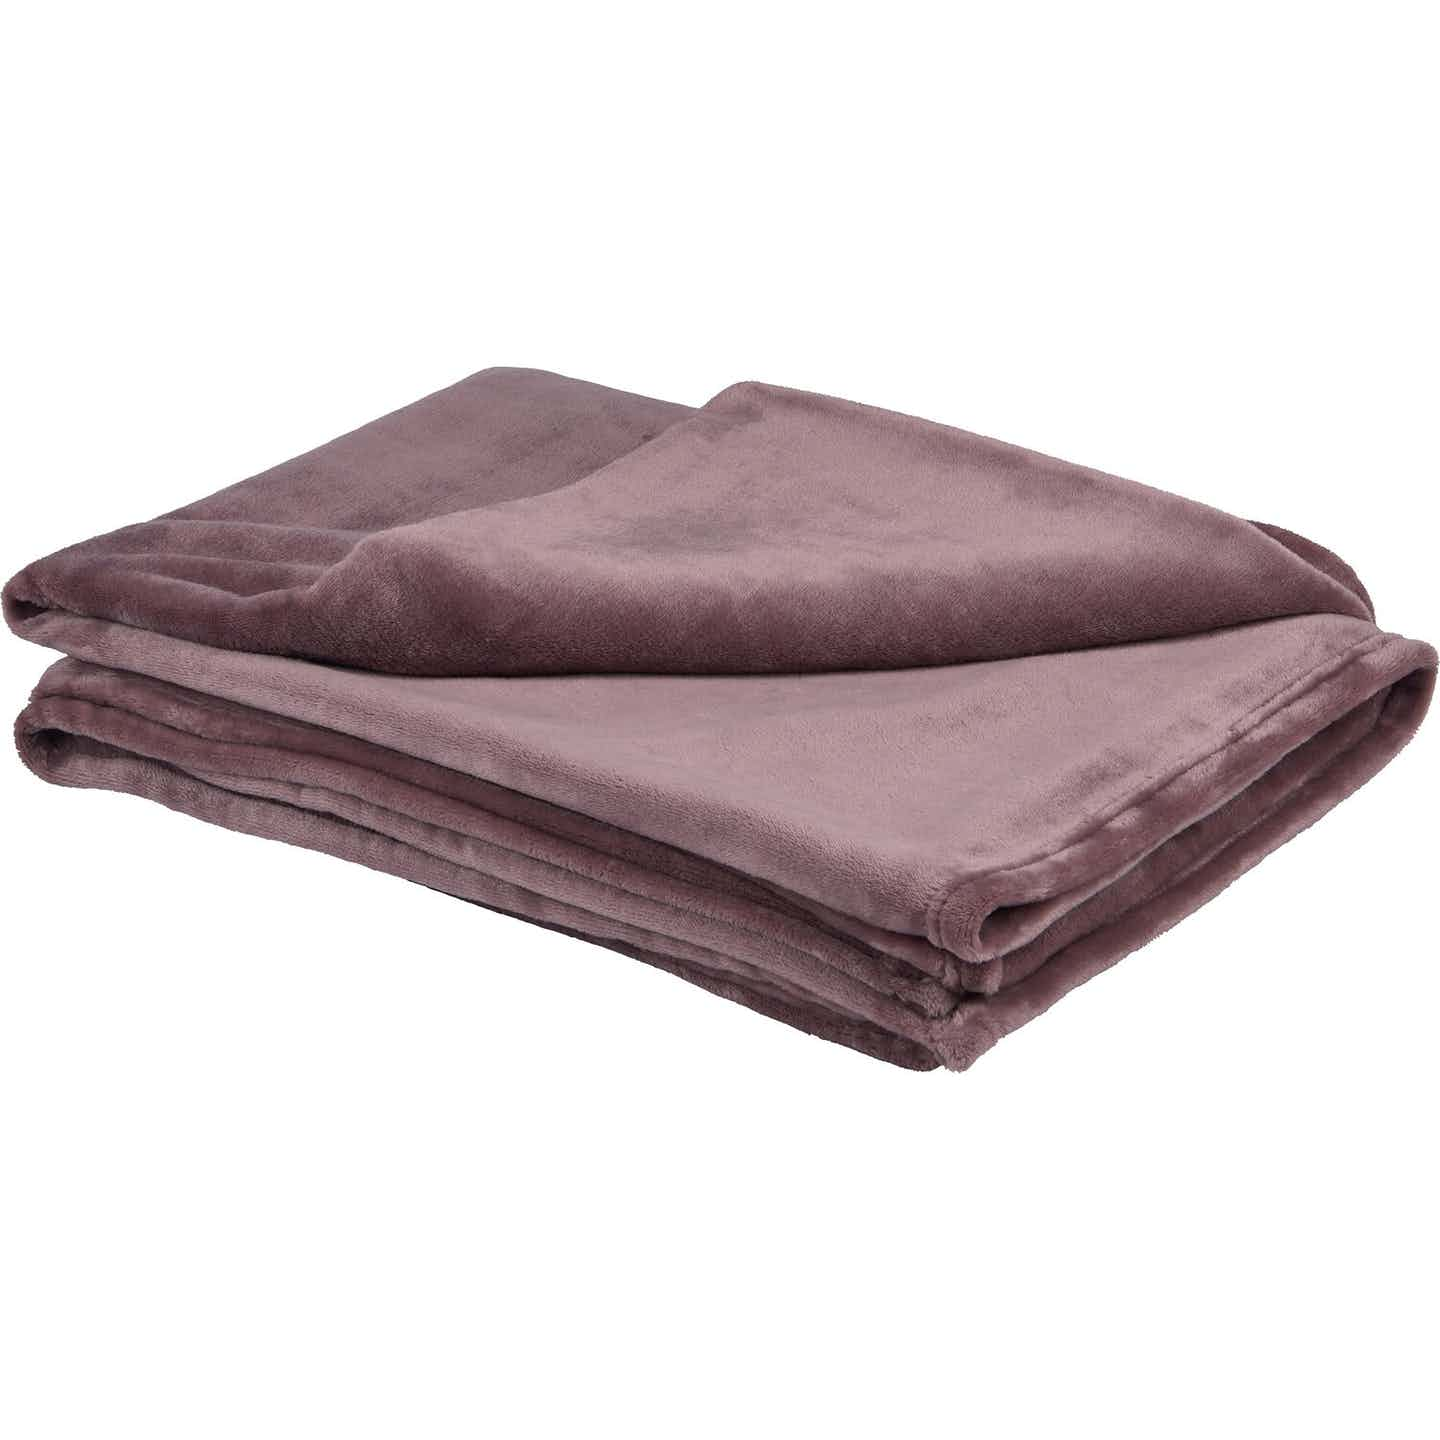 Fleece-Decke Blush Bordeaux Rosa 150 cm x 200 cm